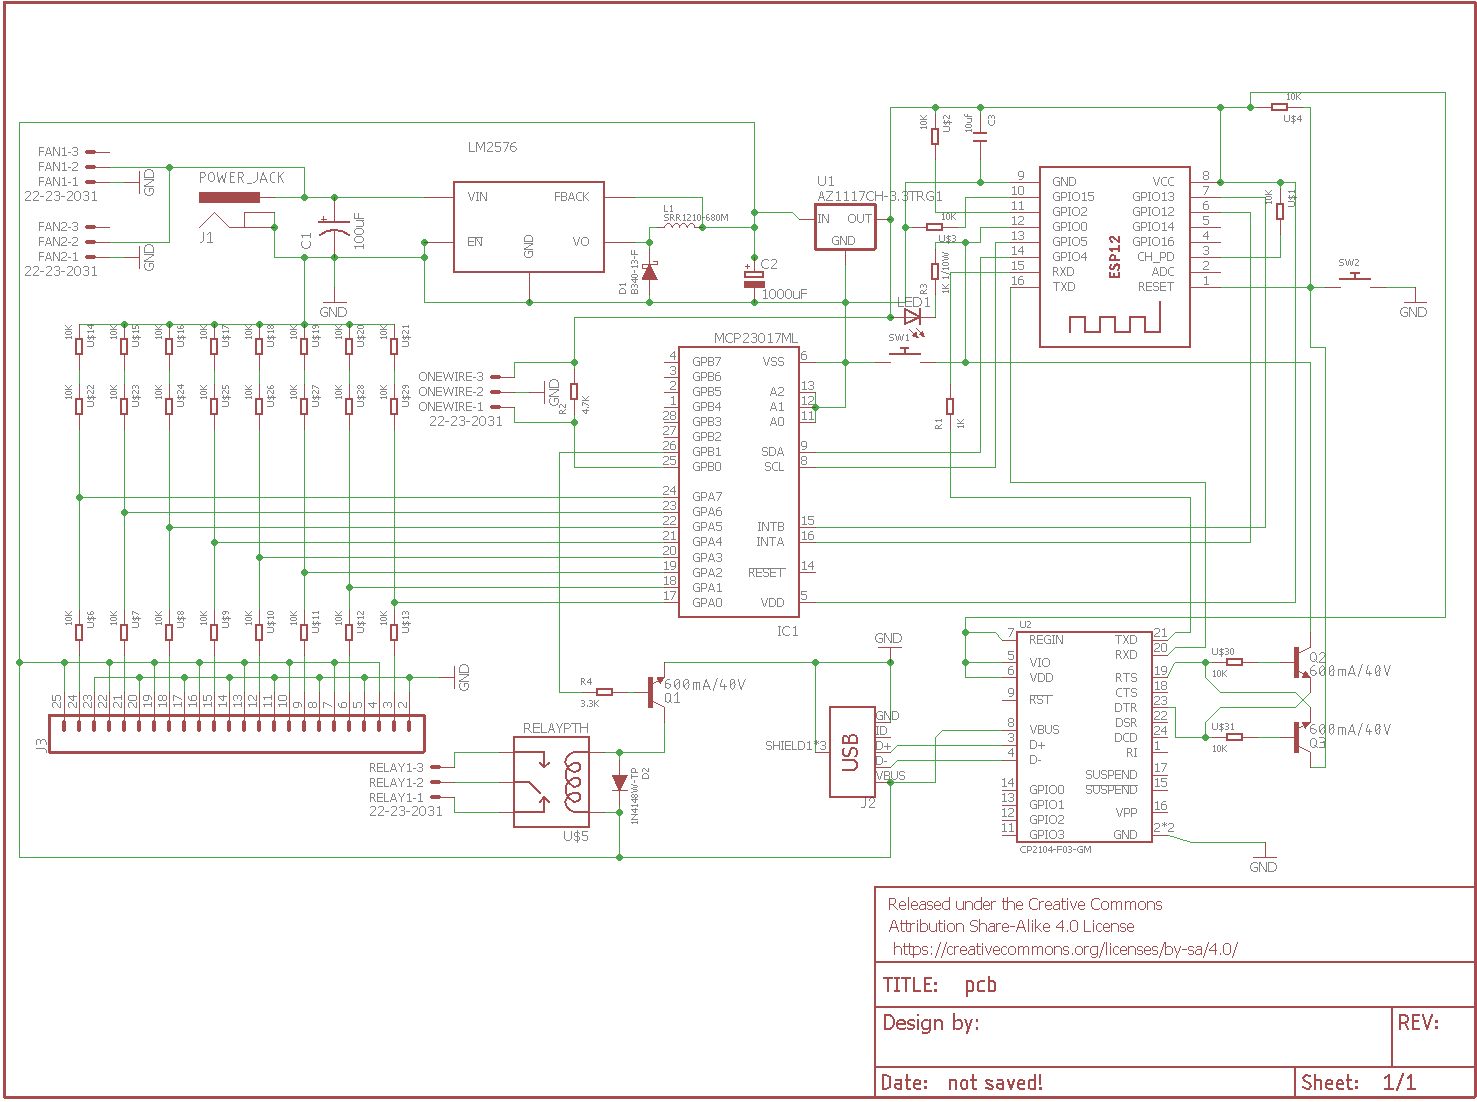 pcb schematic.png